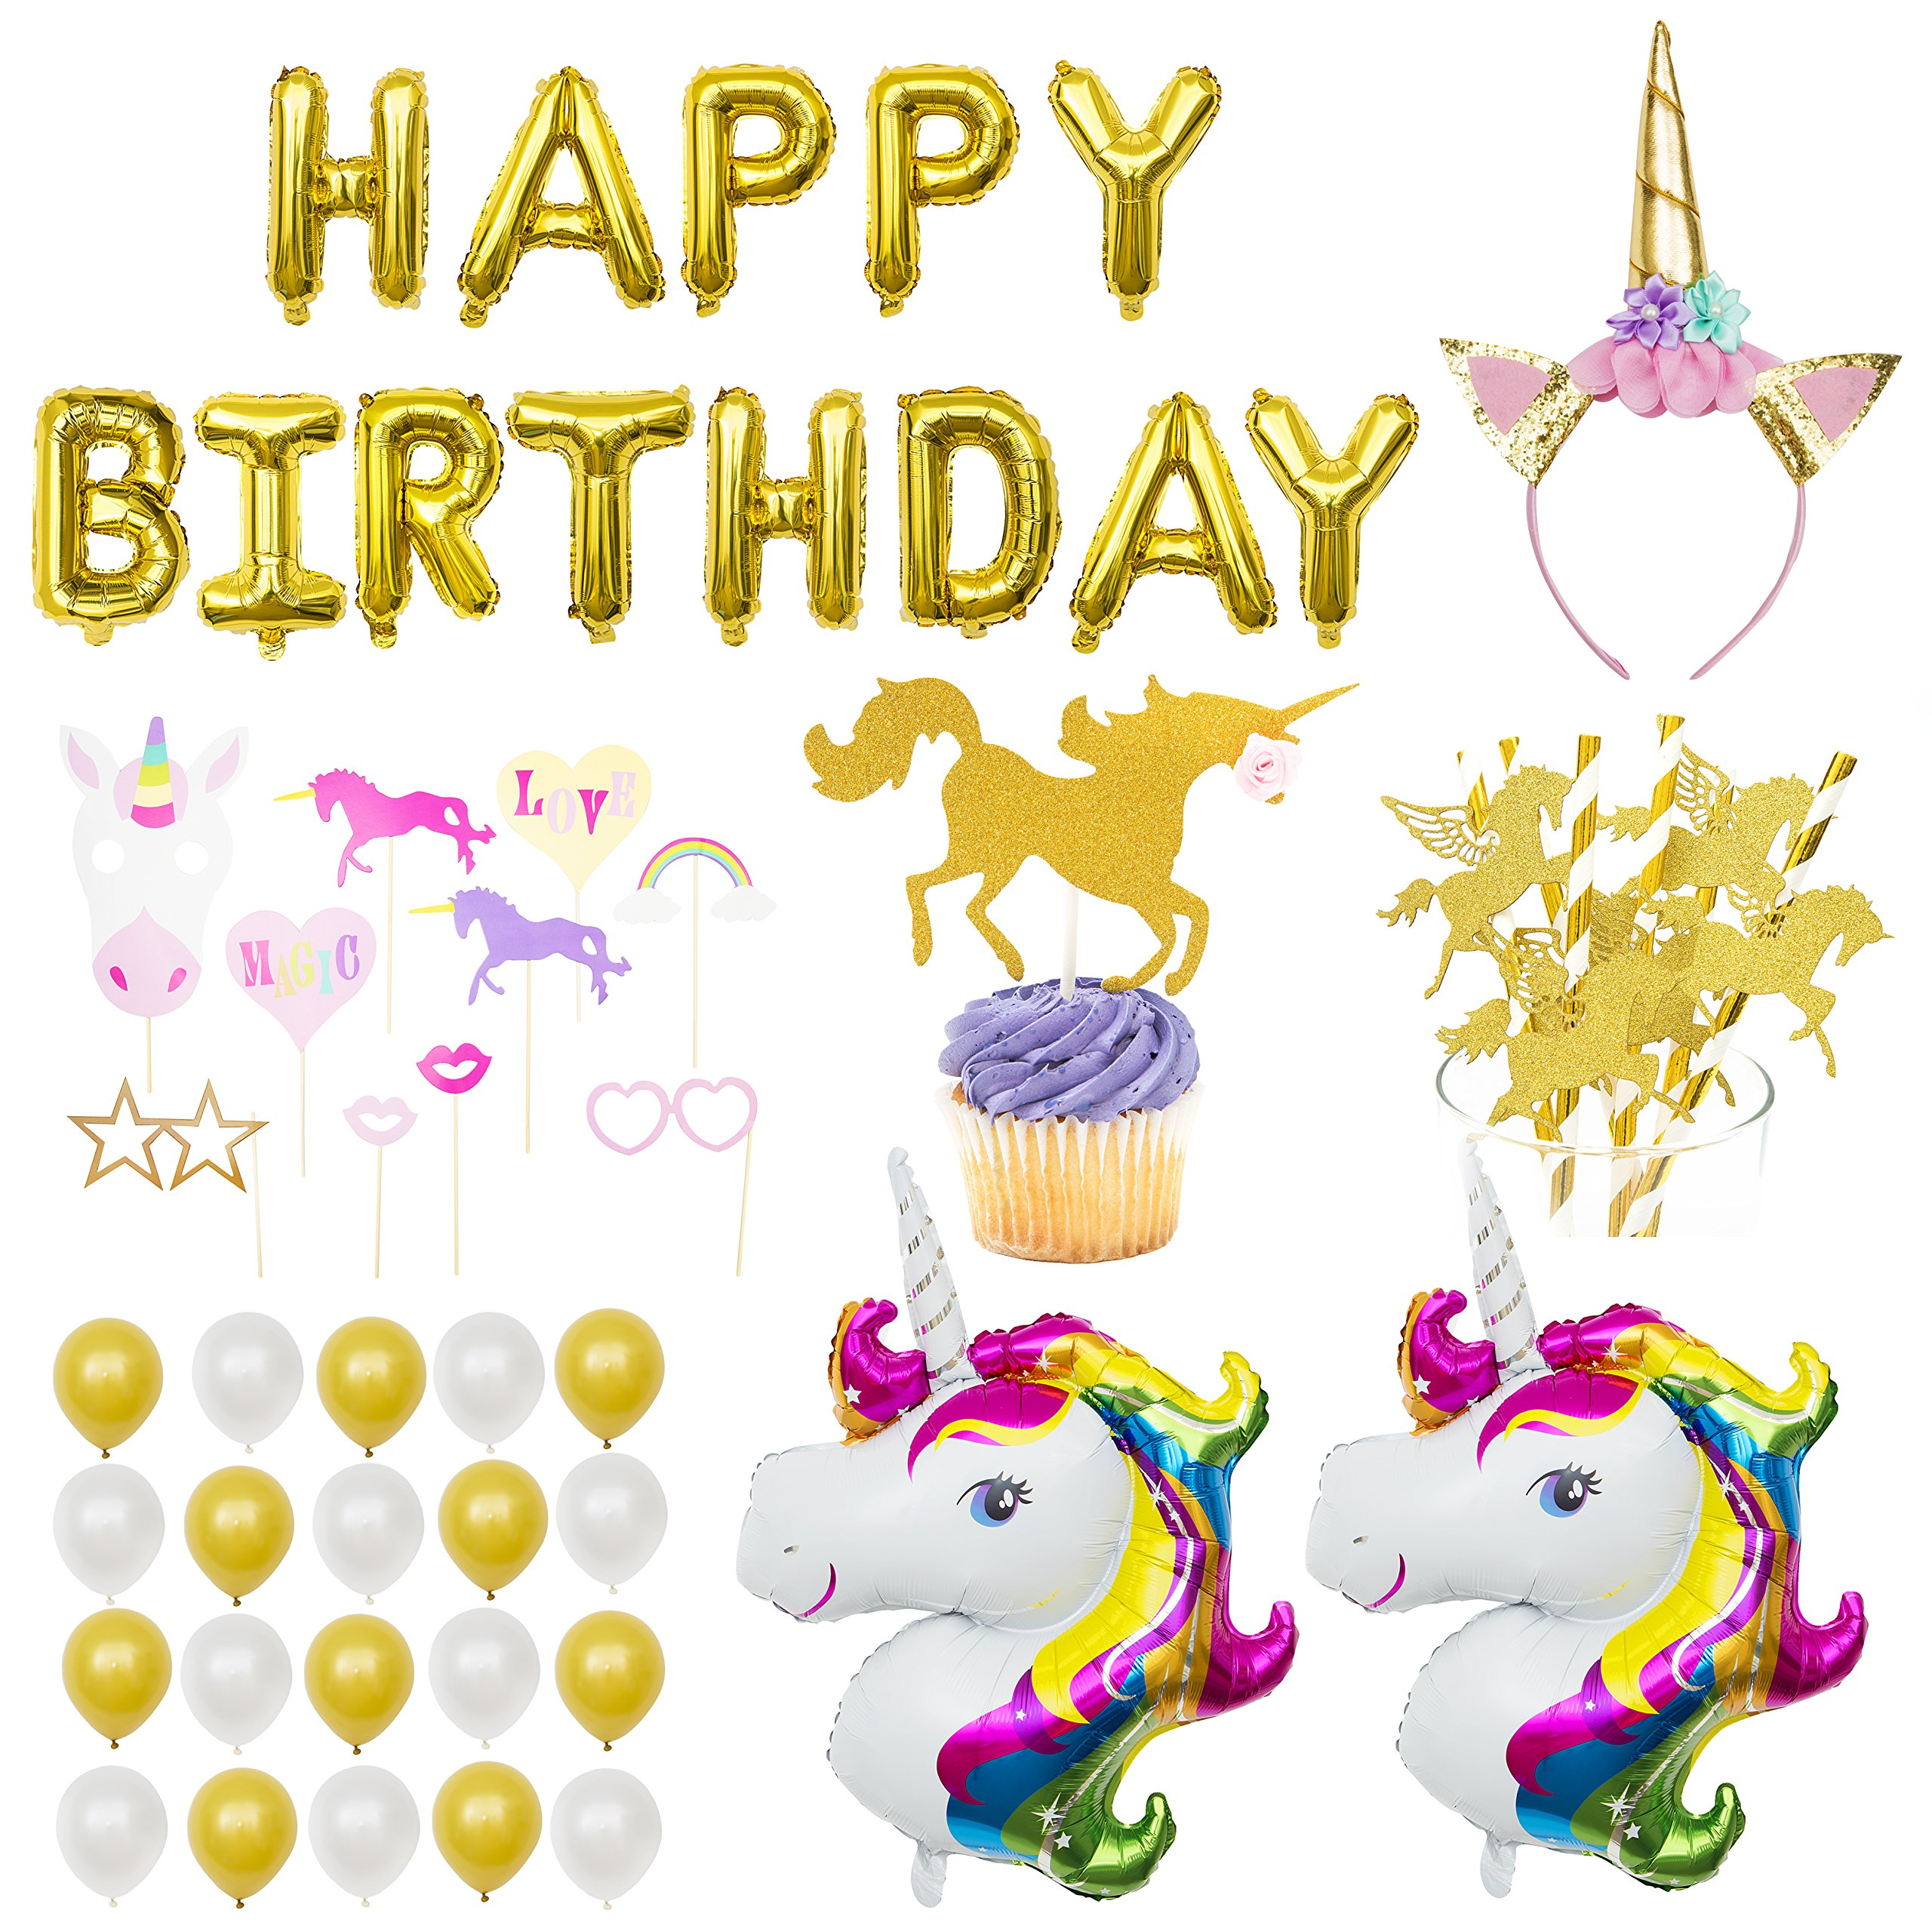 Unicorn Birthday Party Supplies - Unicorn Decorations Including Happy Birthday Banner, Large Unicorn Foil Balloons, Gold Unicorn Headband, Photo Booth Props, Glitter Unicorn Cake Toppers, More